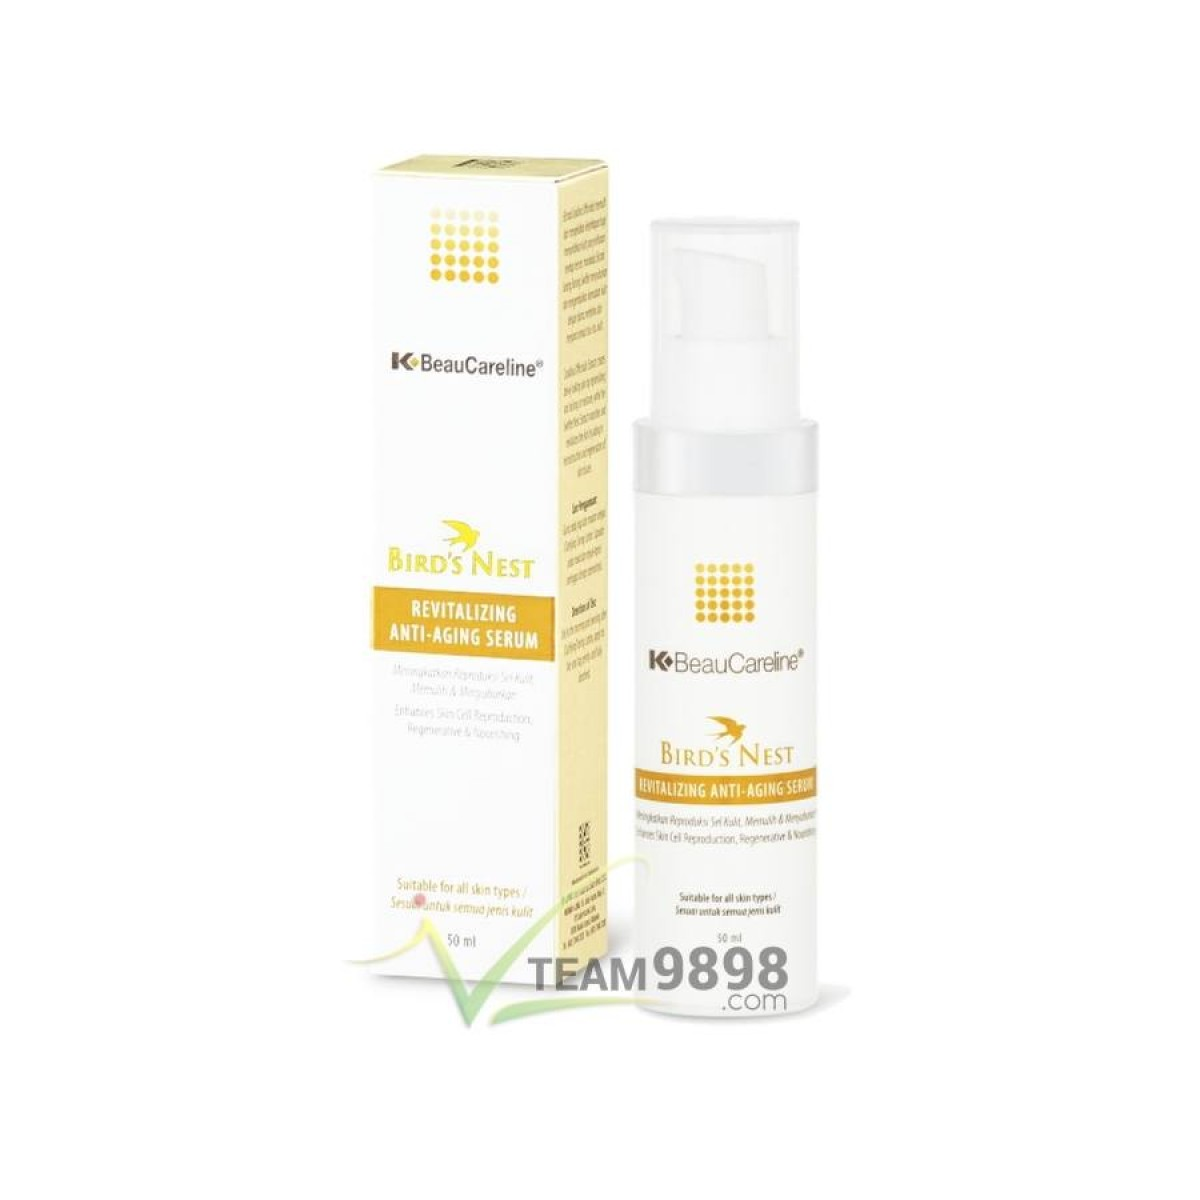 K-BeauCareline Revitalizing Anti-Aging Serum